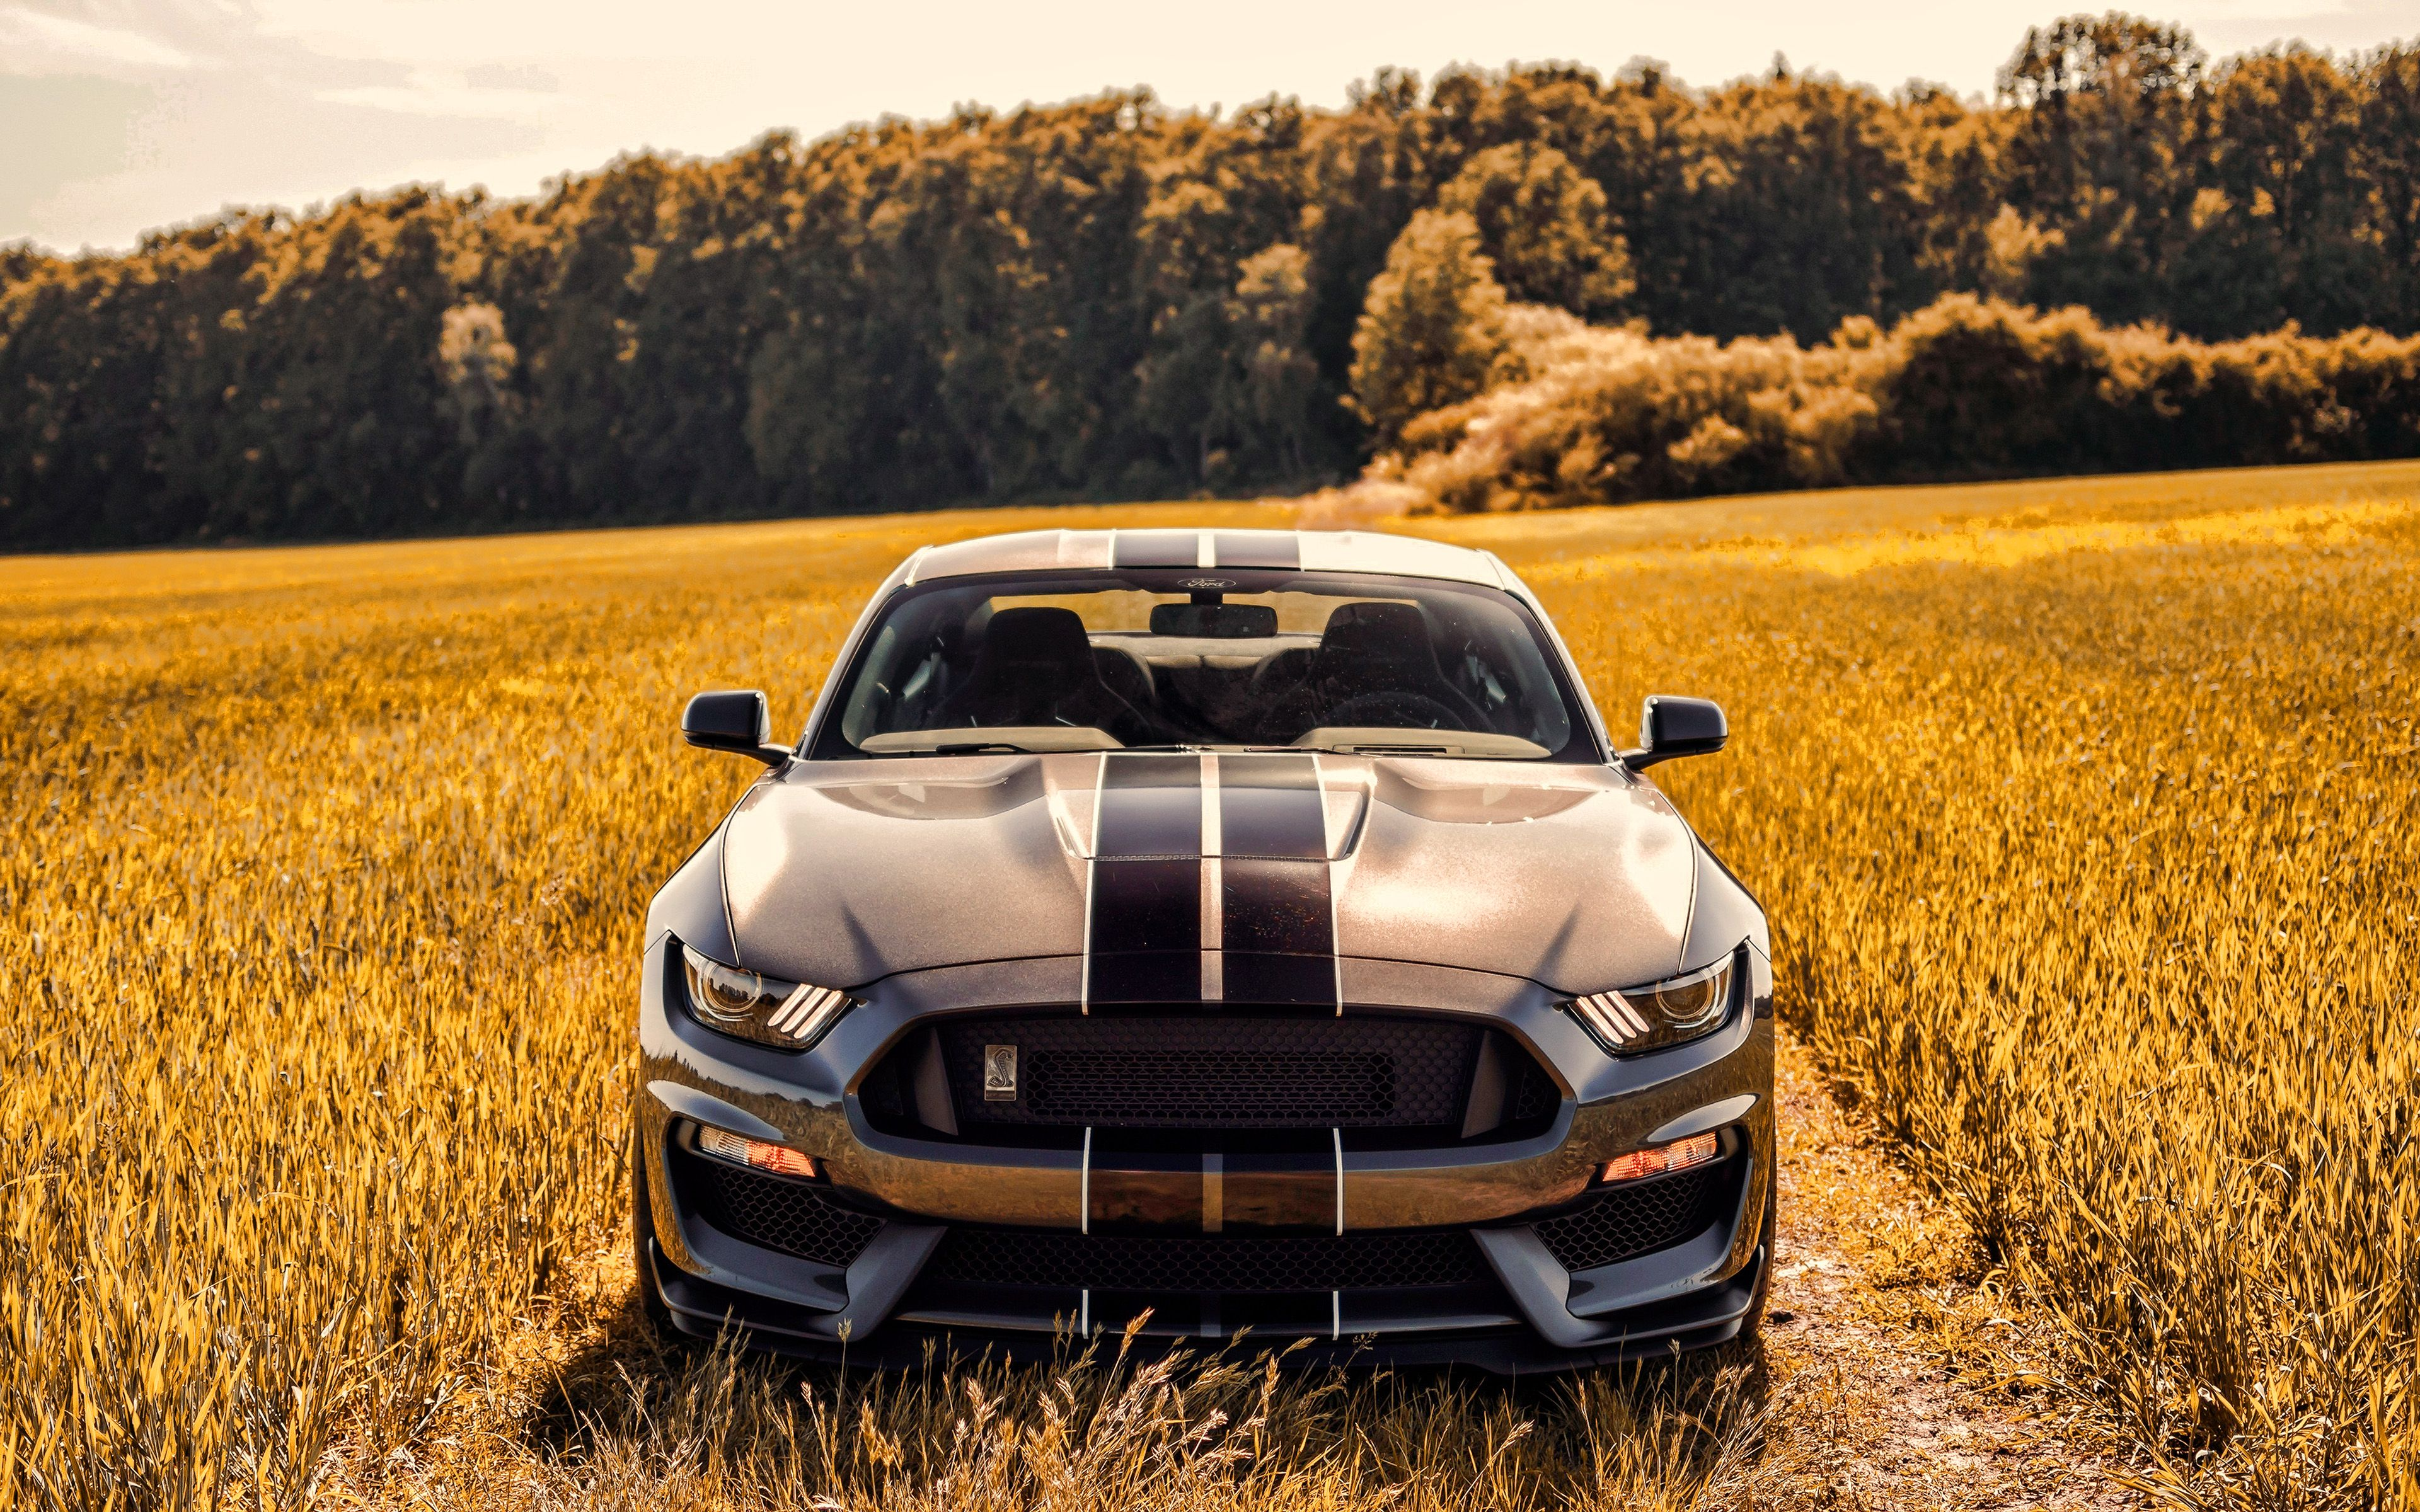 Ford Mustang Shelby Gt350 4k Offroad 2019 Cars Supercars 2019 Ford Mustang American Cars Ford Ford Mustang Shelby Mustang Shelby Ford Mustang Wallpaper